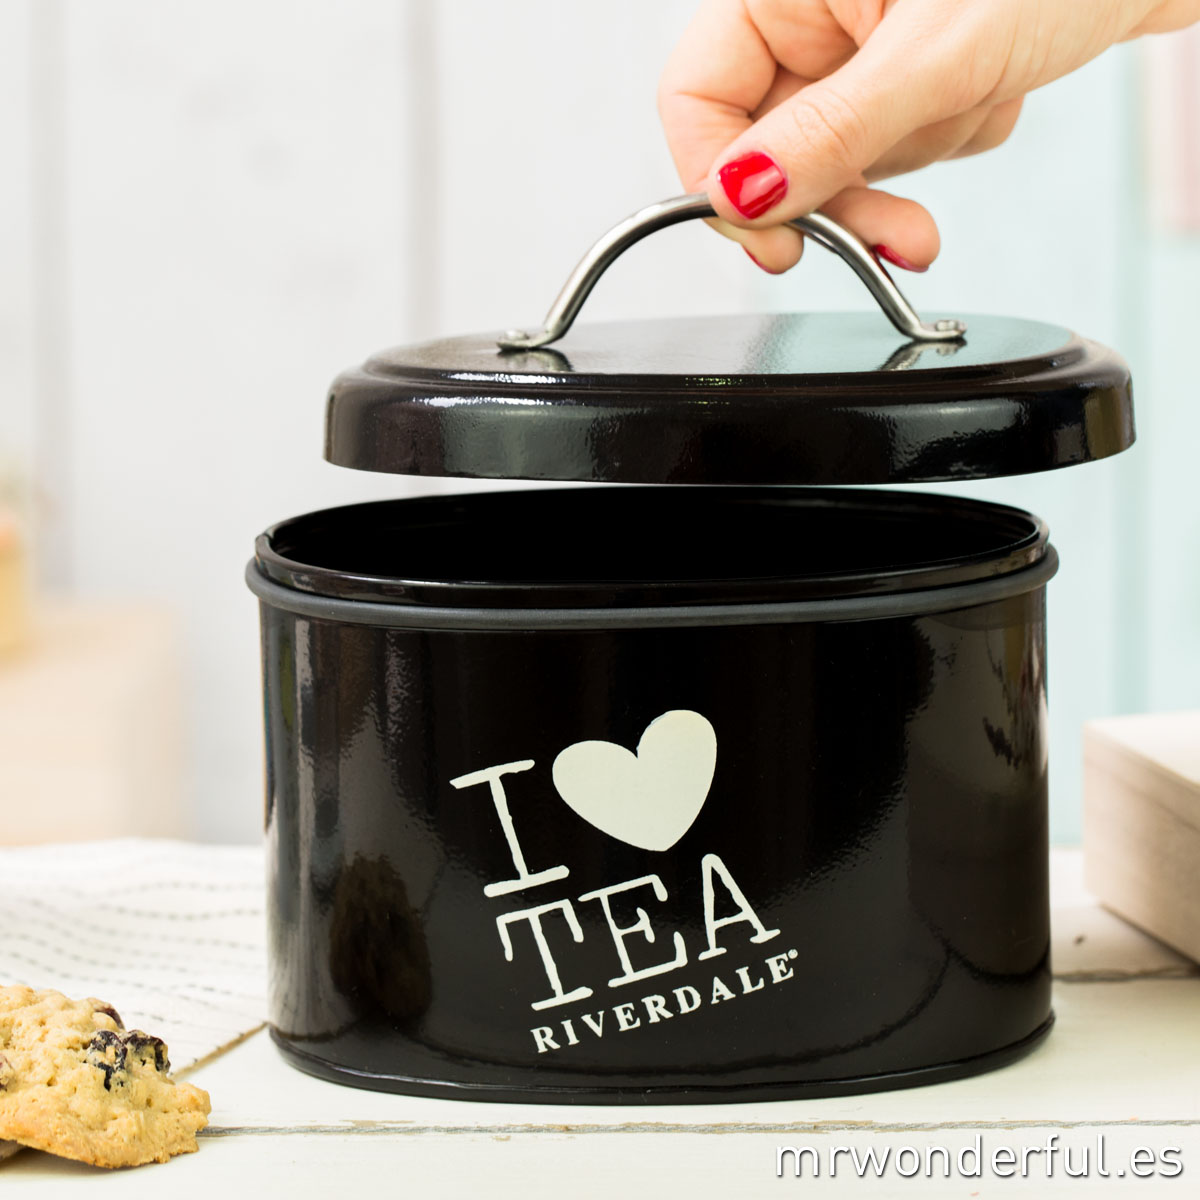 mrwonderful_330154-12_1_bote-metal-negro-tapa_i-love-tea-21